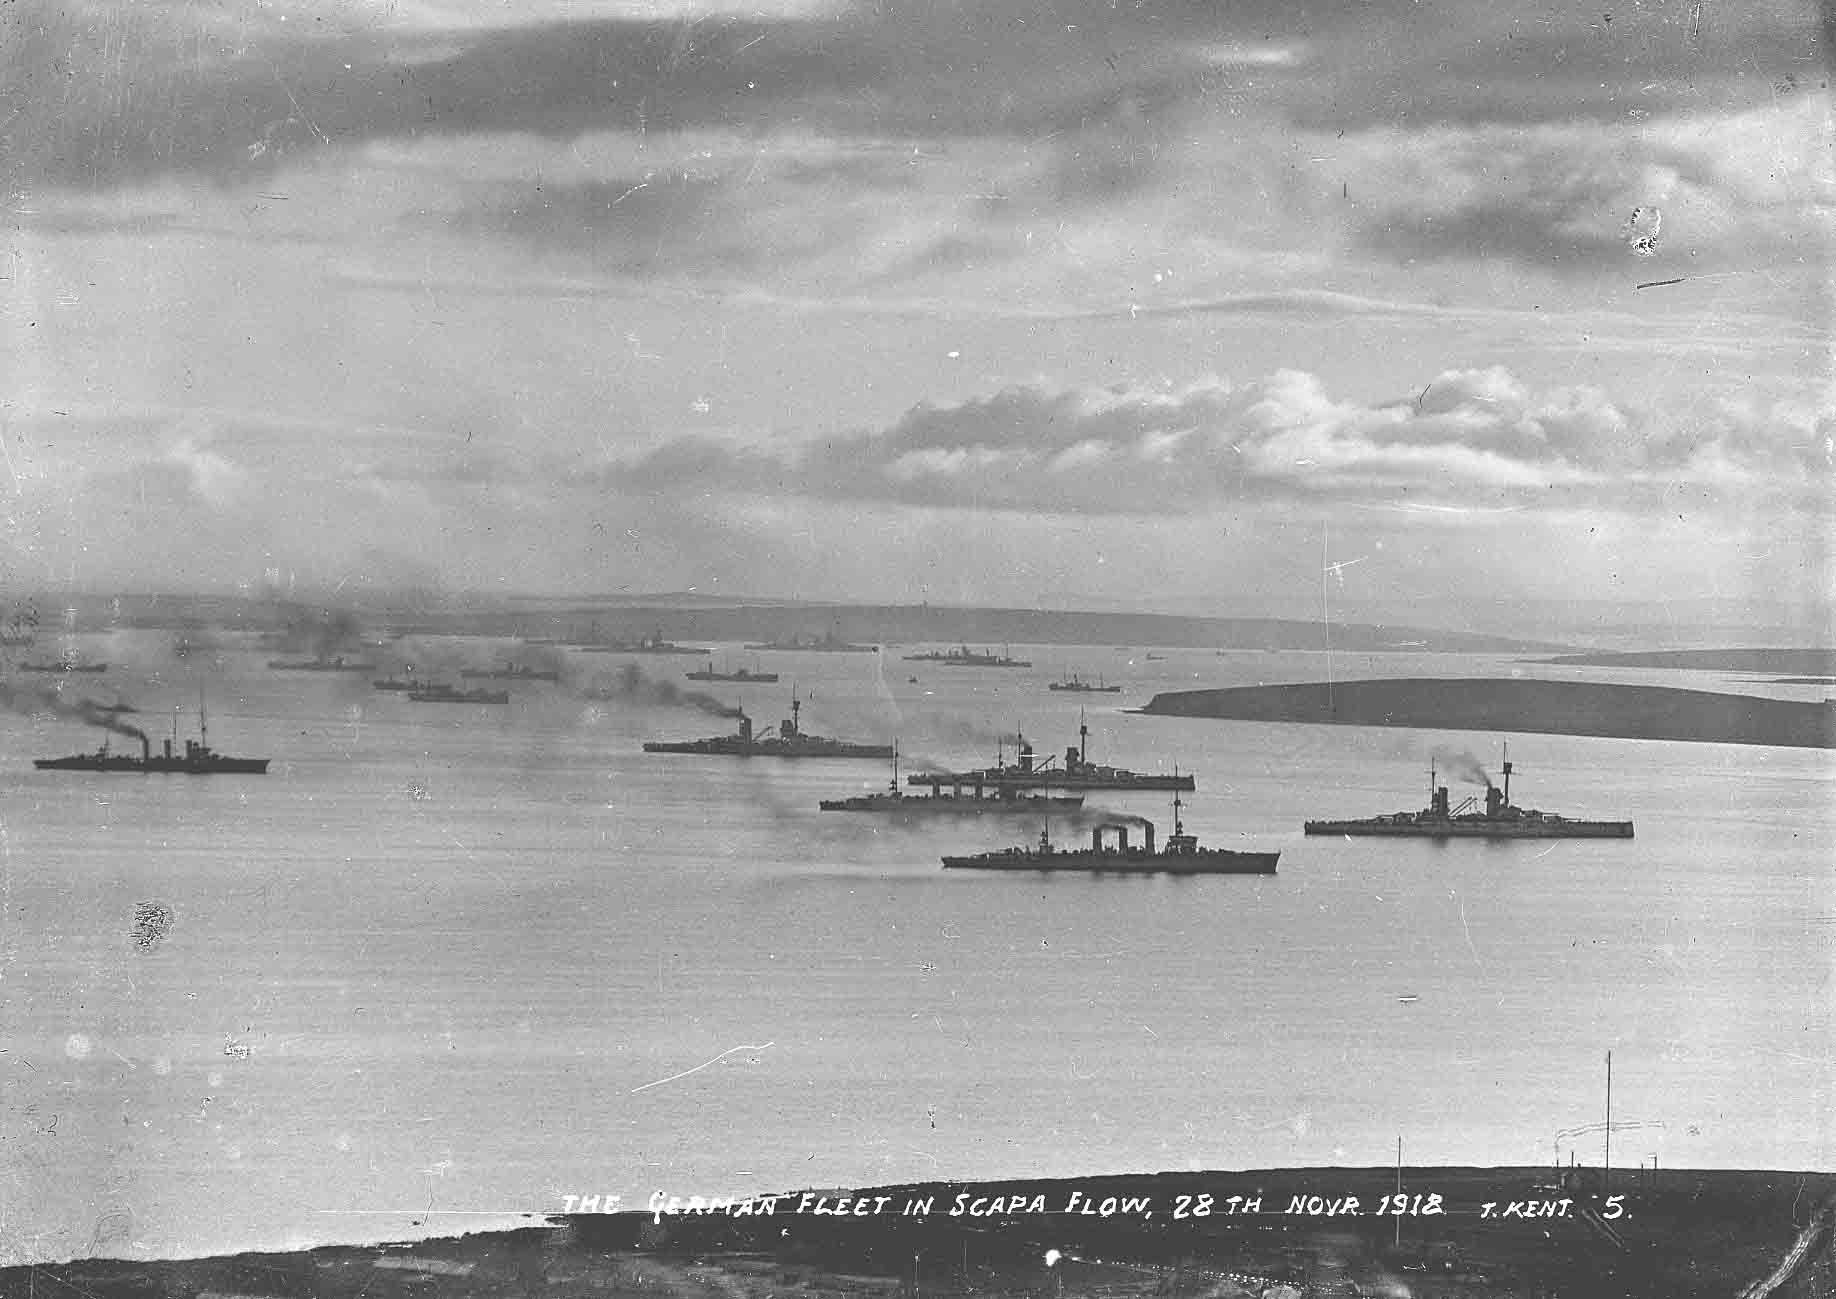 The German Fleet in Scapa Flow, November 1918 - image courtesy Orkney Library & Archive